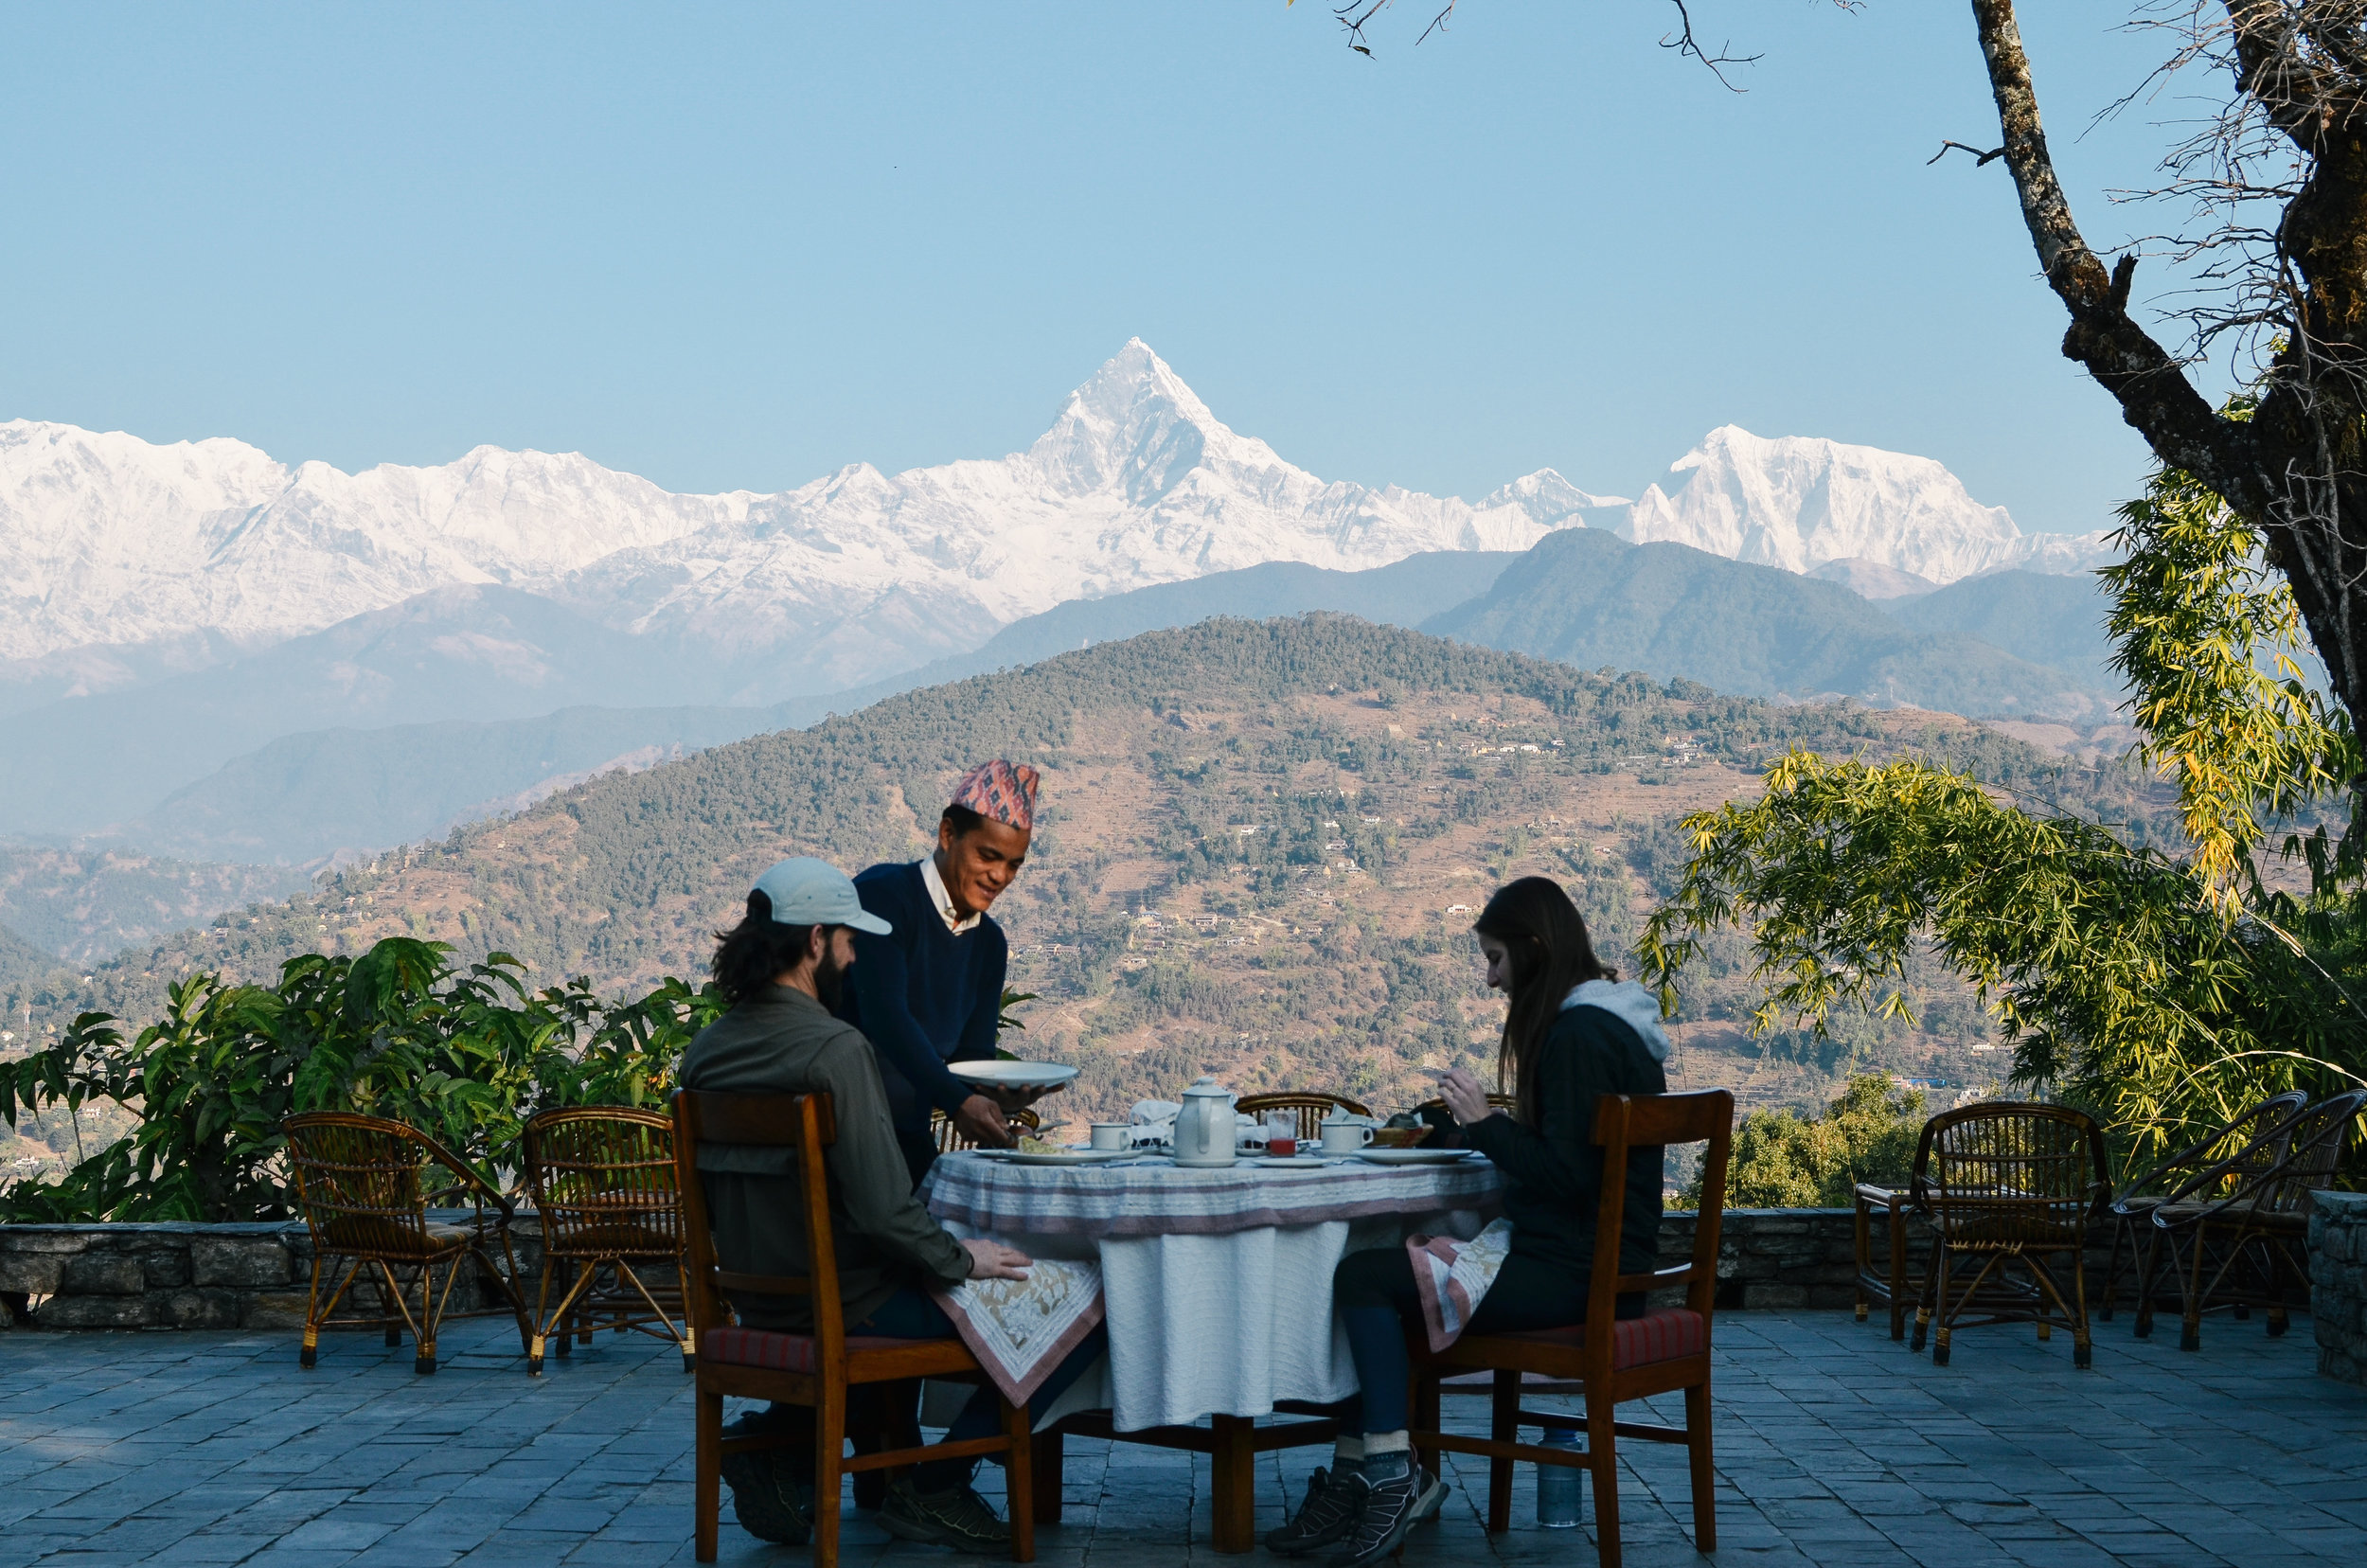 Pokara-Mountain_Lodge-Nepal-LifeonPine_DSC_0930.jpg